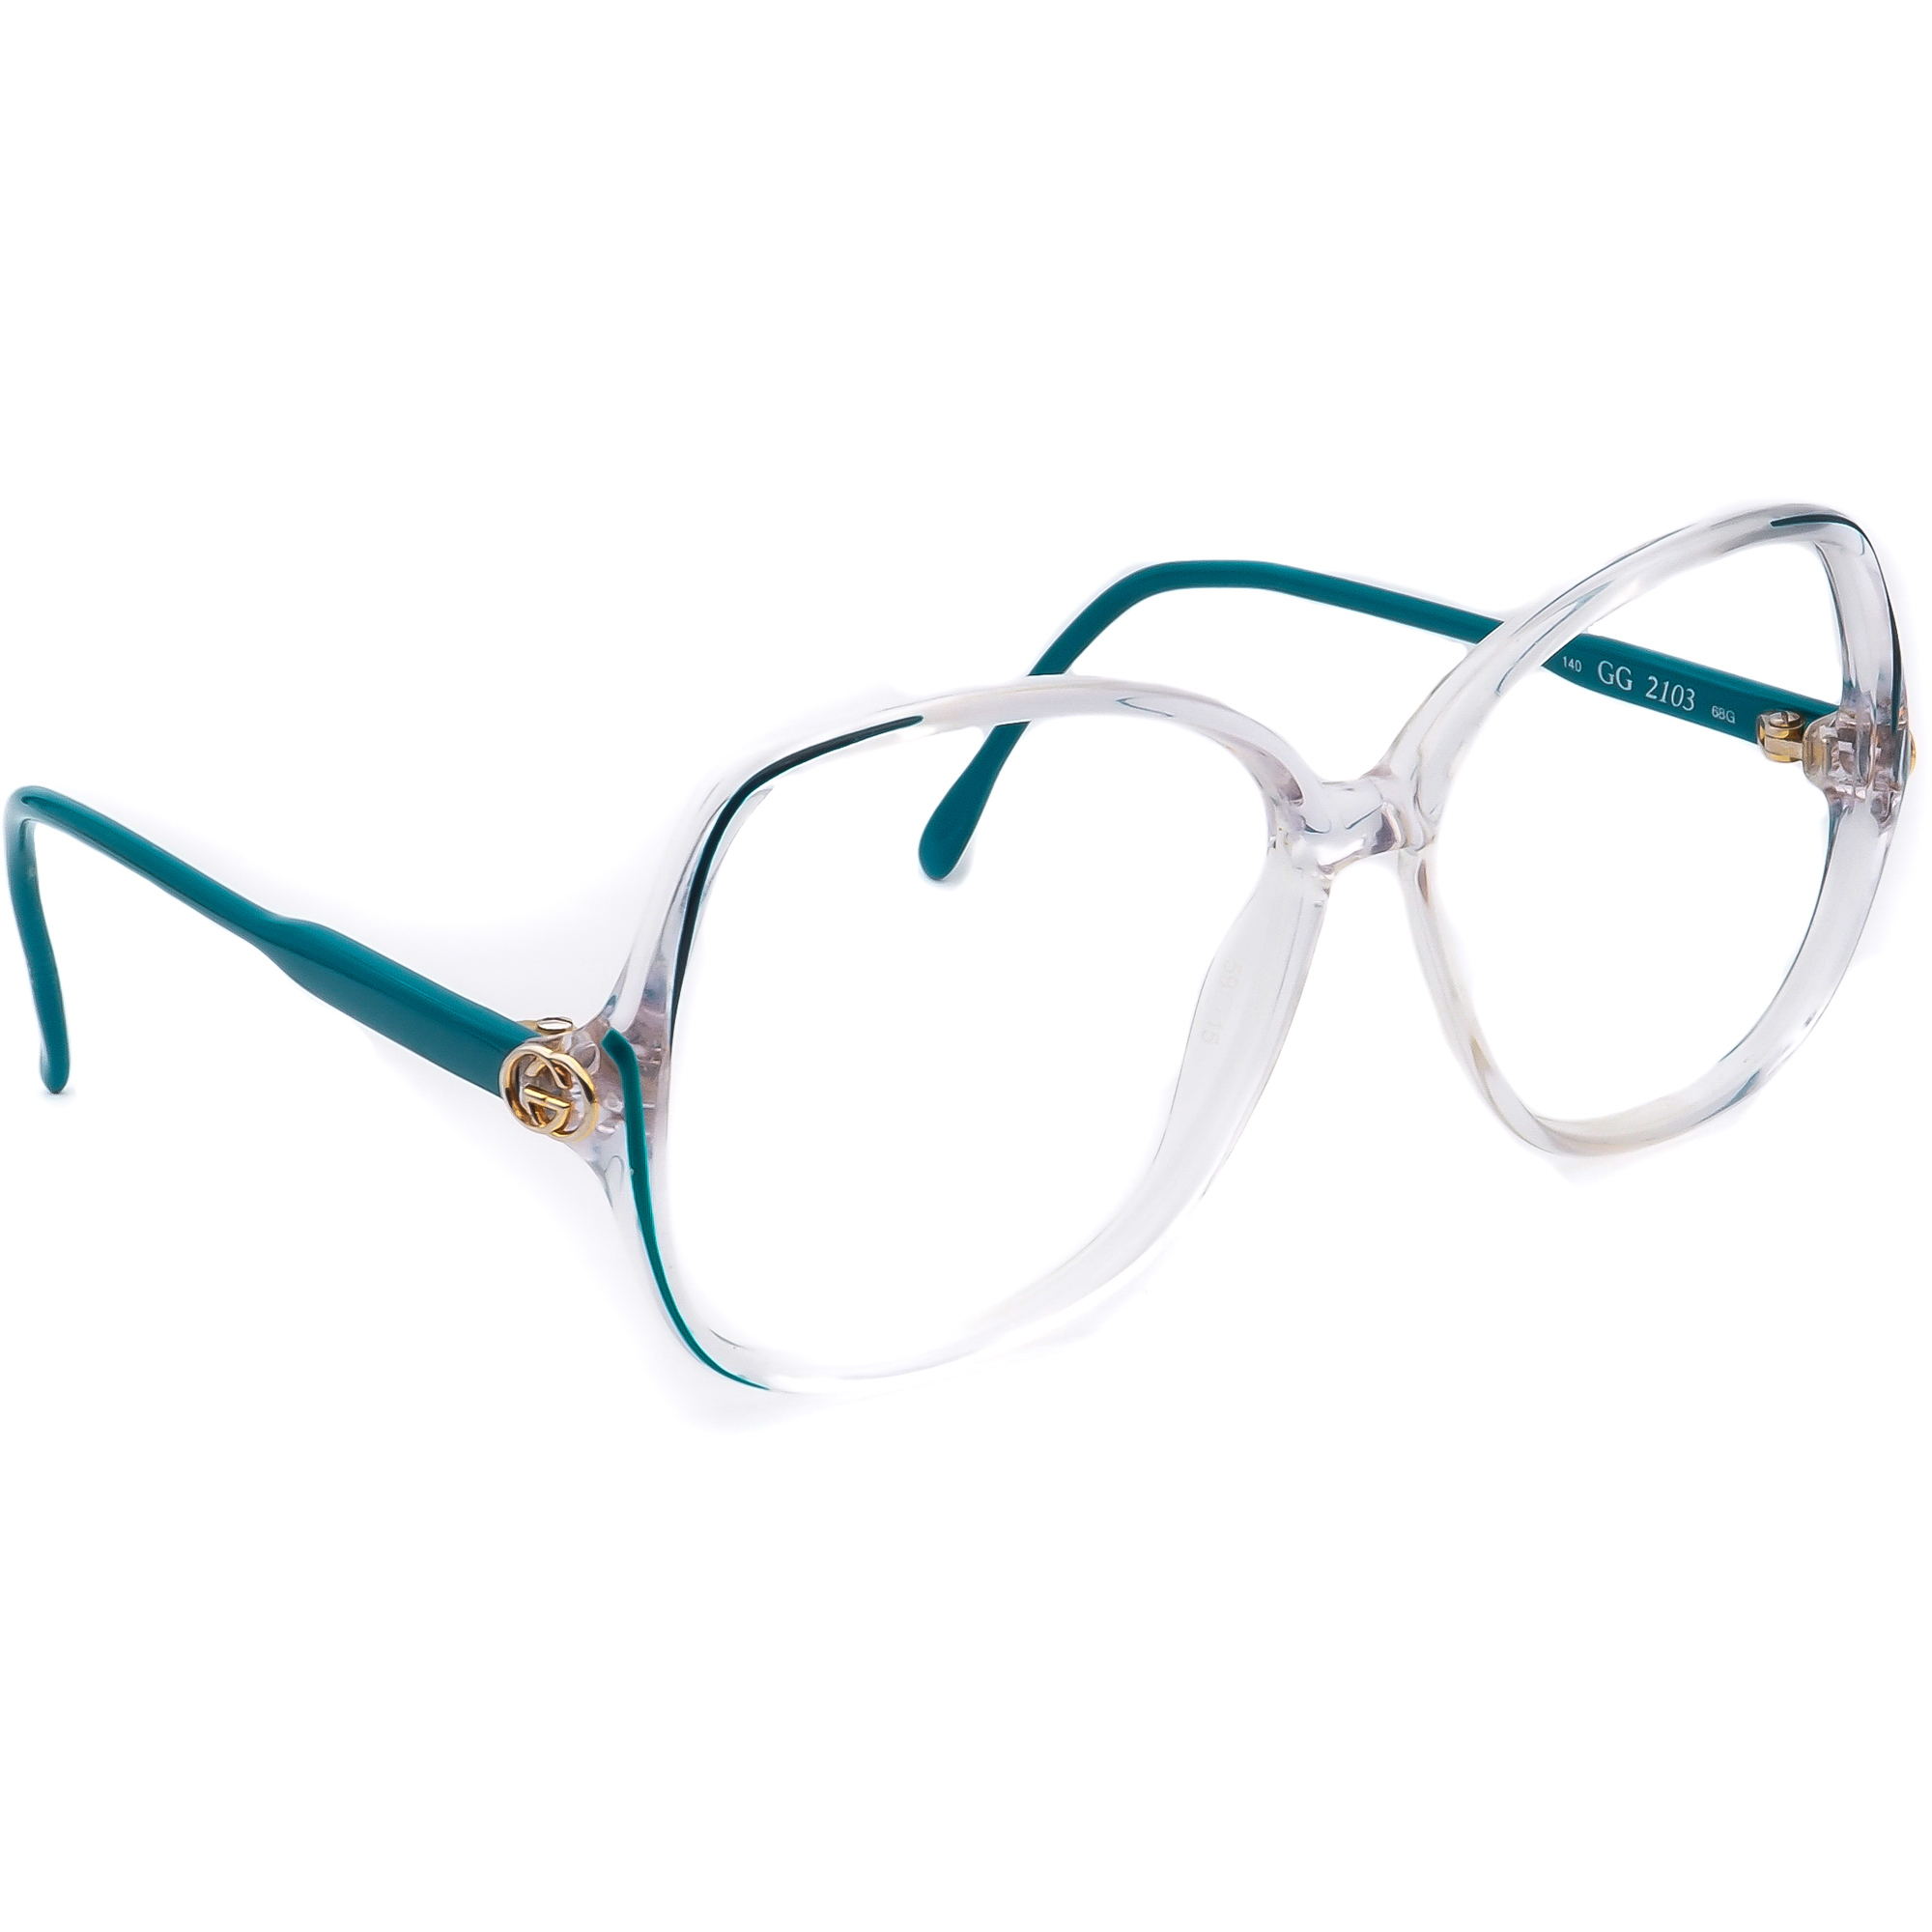 Gucci Eyeglasses Frame Only GG 2103 68G Clear/Turquoise Square Italy 59 mm